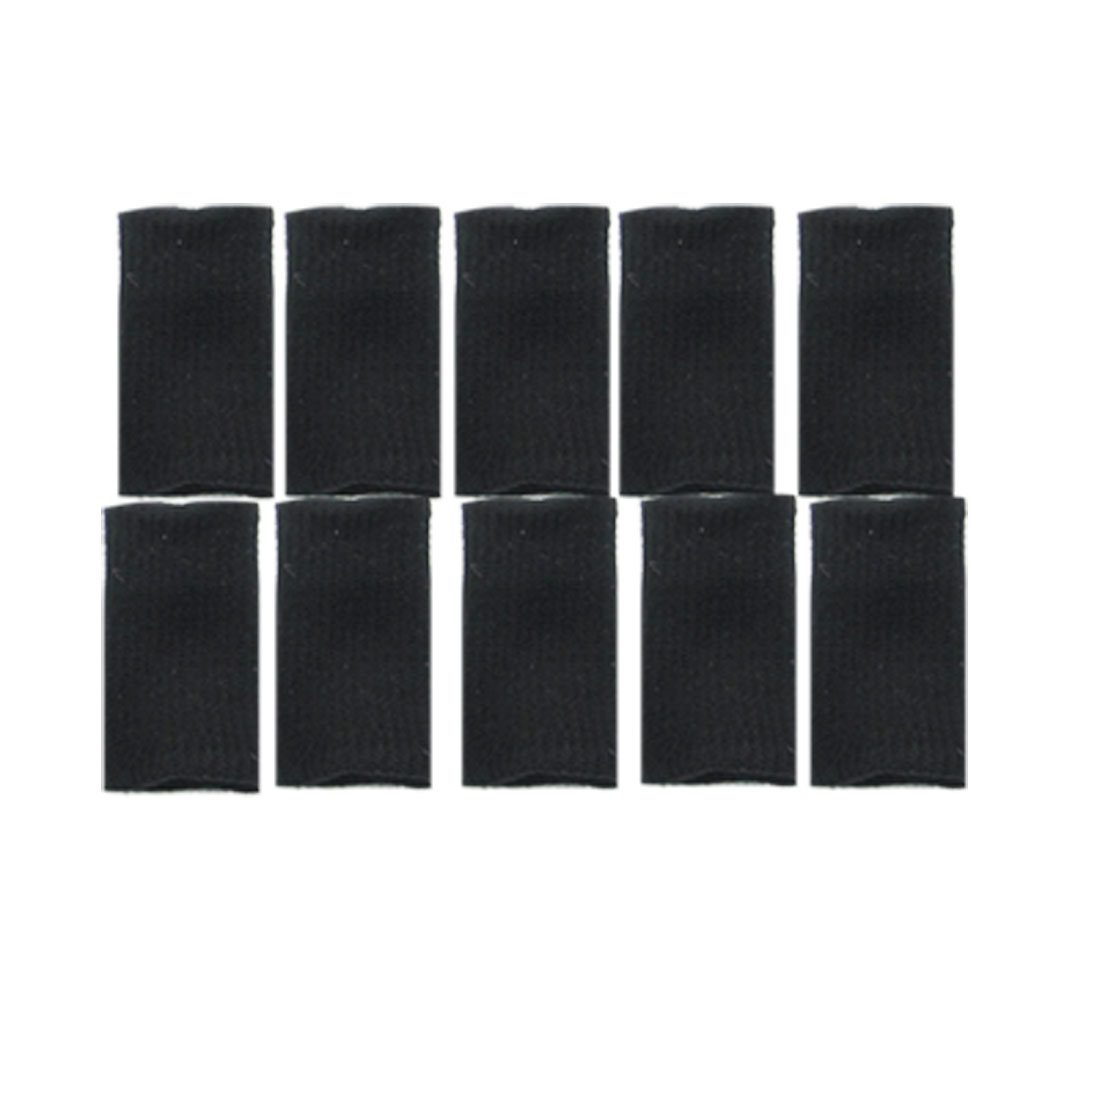 10 Pcs Black Elastic Finger Sleeves Basketball Sports Wrap